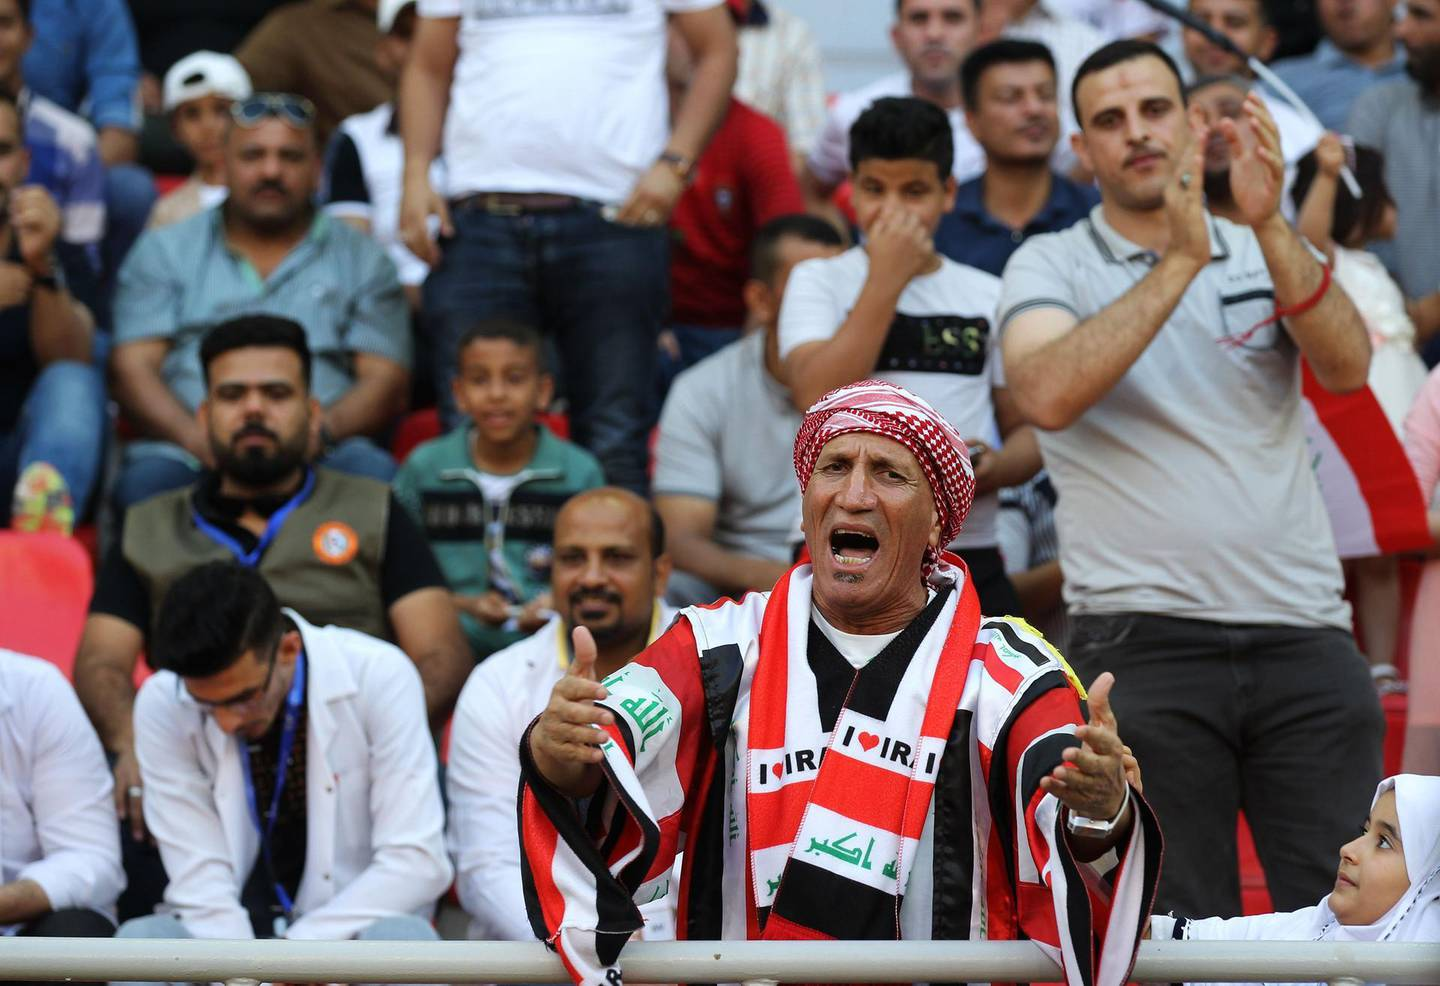 Iraqi fans watch the AFC Cup football match between Iraq's Al-Zawraa club and Bahrain's Manama club at the Karbala Sports City stadium on April 16, 2018. Iraq recently started hosting foreign football clubs for competitive matches for the first time in decades, after FIFA gave the go-ahead for games to resume.       / AFP PHOTO / AHMAD AL-RUBAYE